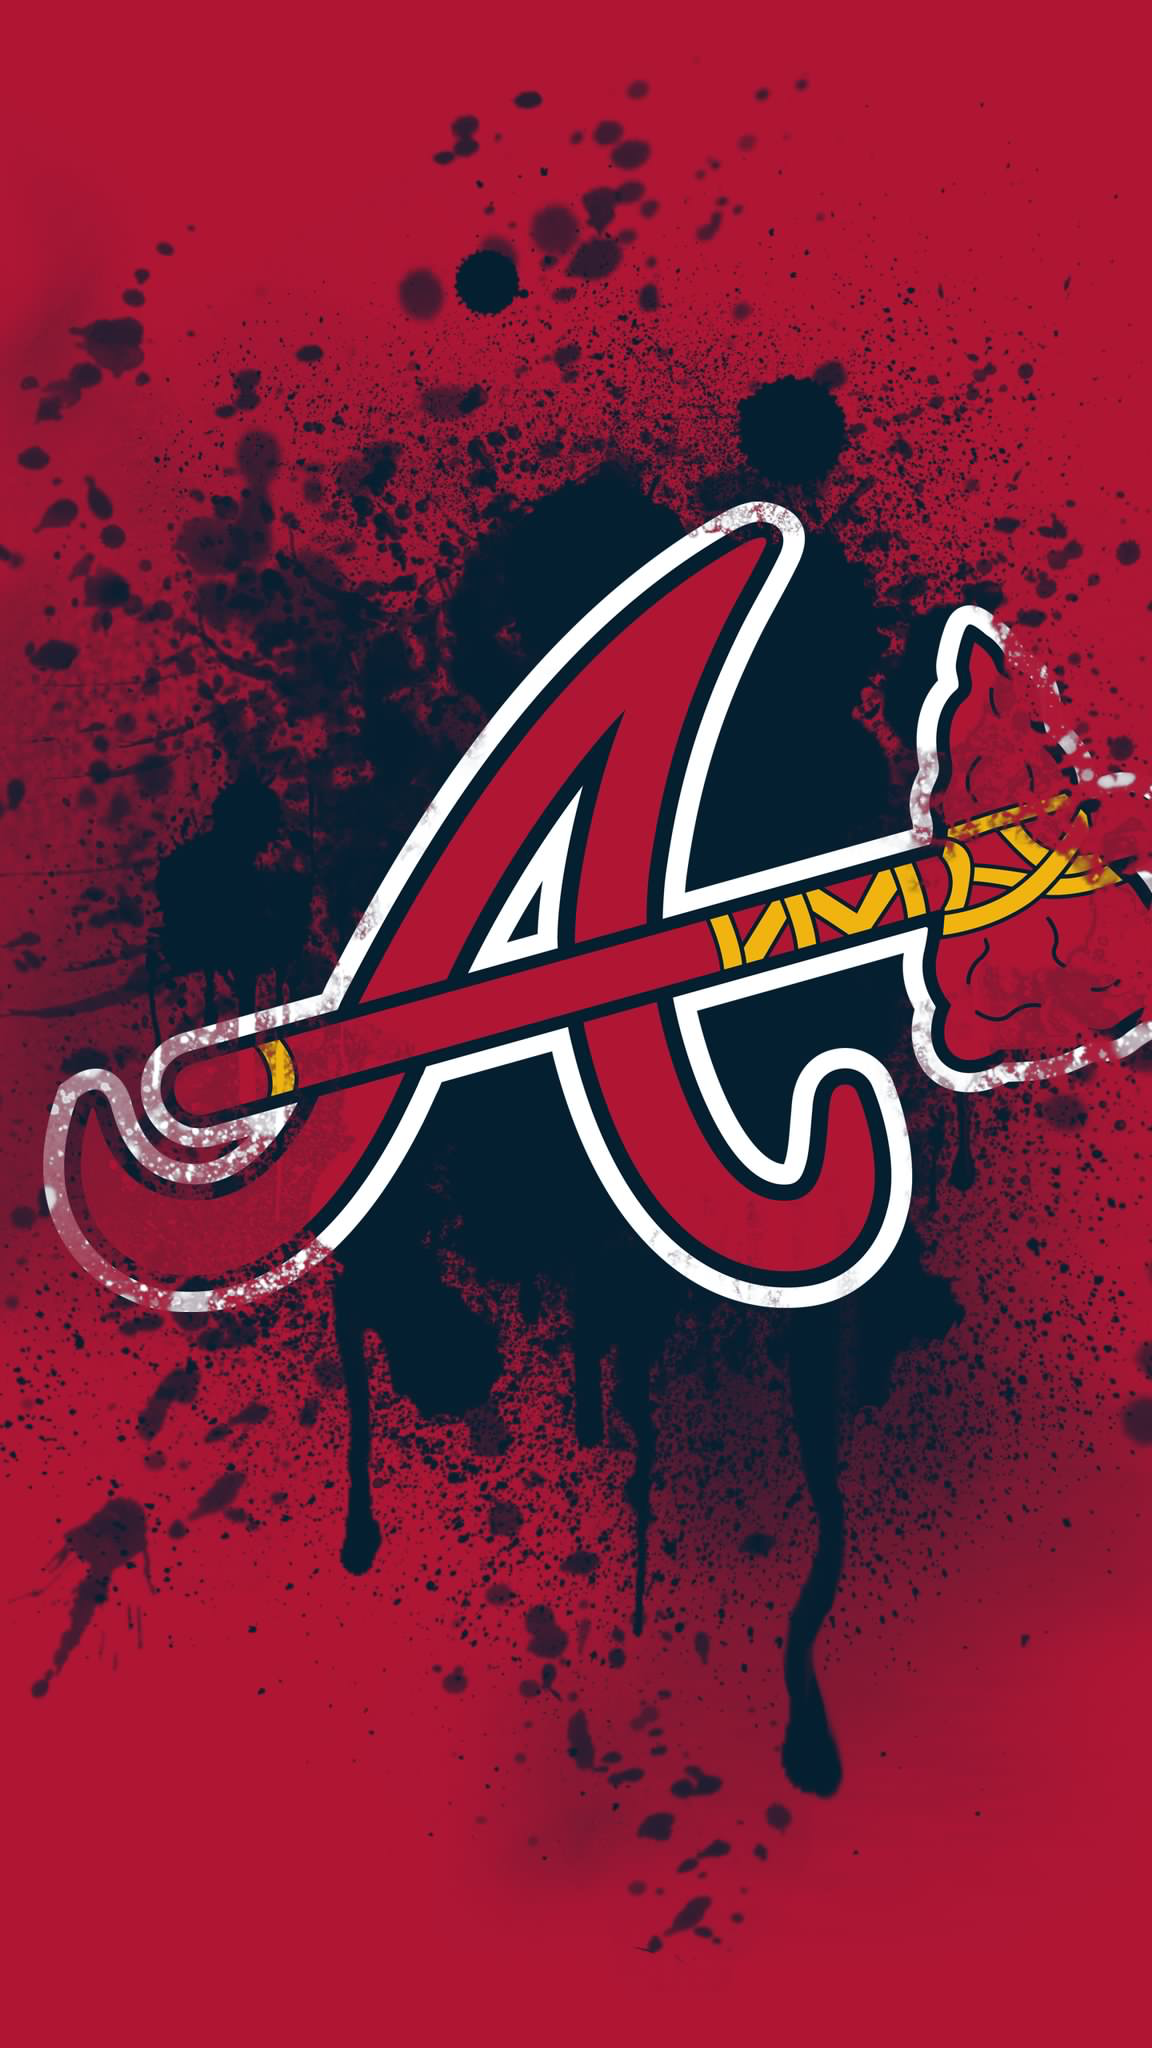 Pin By Michael Lewis On Atlanta Braves Atlanta Braves Wallpaper Atlanta Braves Logo Atlanta Braves